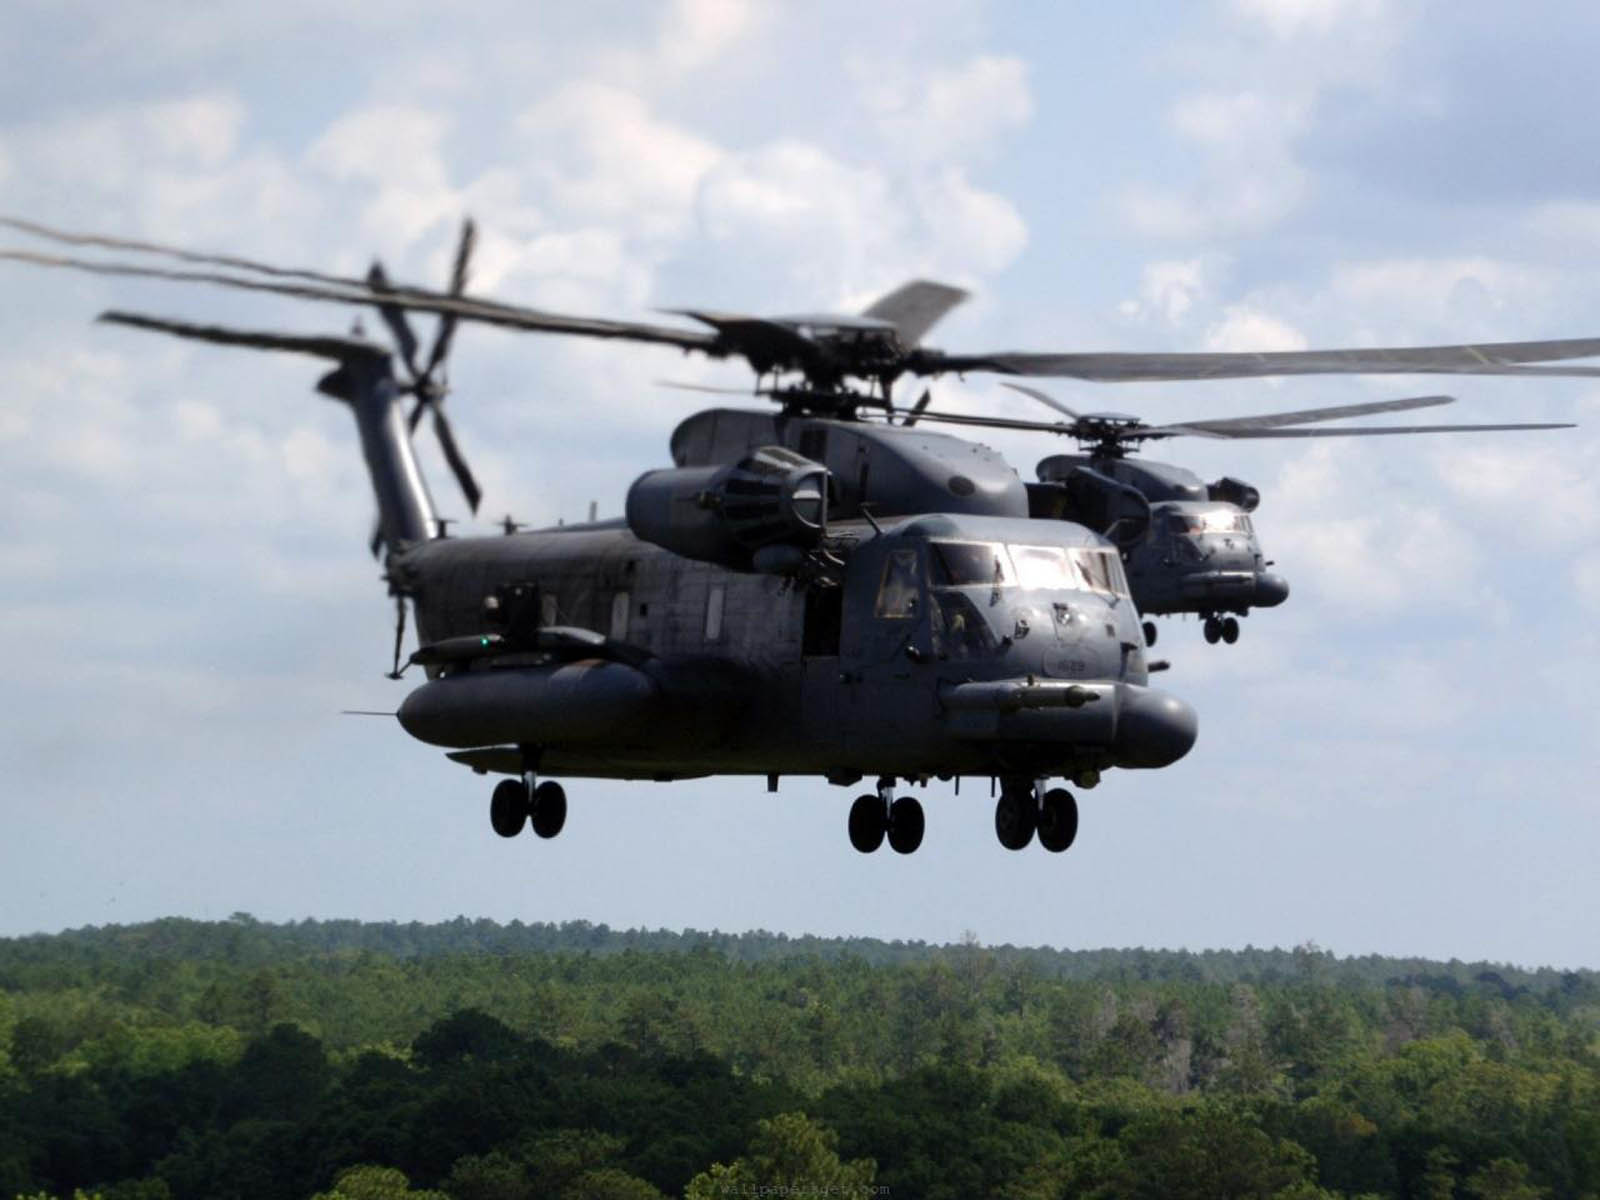 Bike And Car Wallpaper Wallpapers Mh 53 Pave Low Helicopter Wallpapers